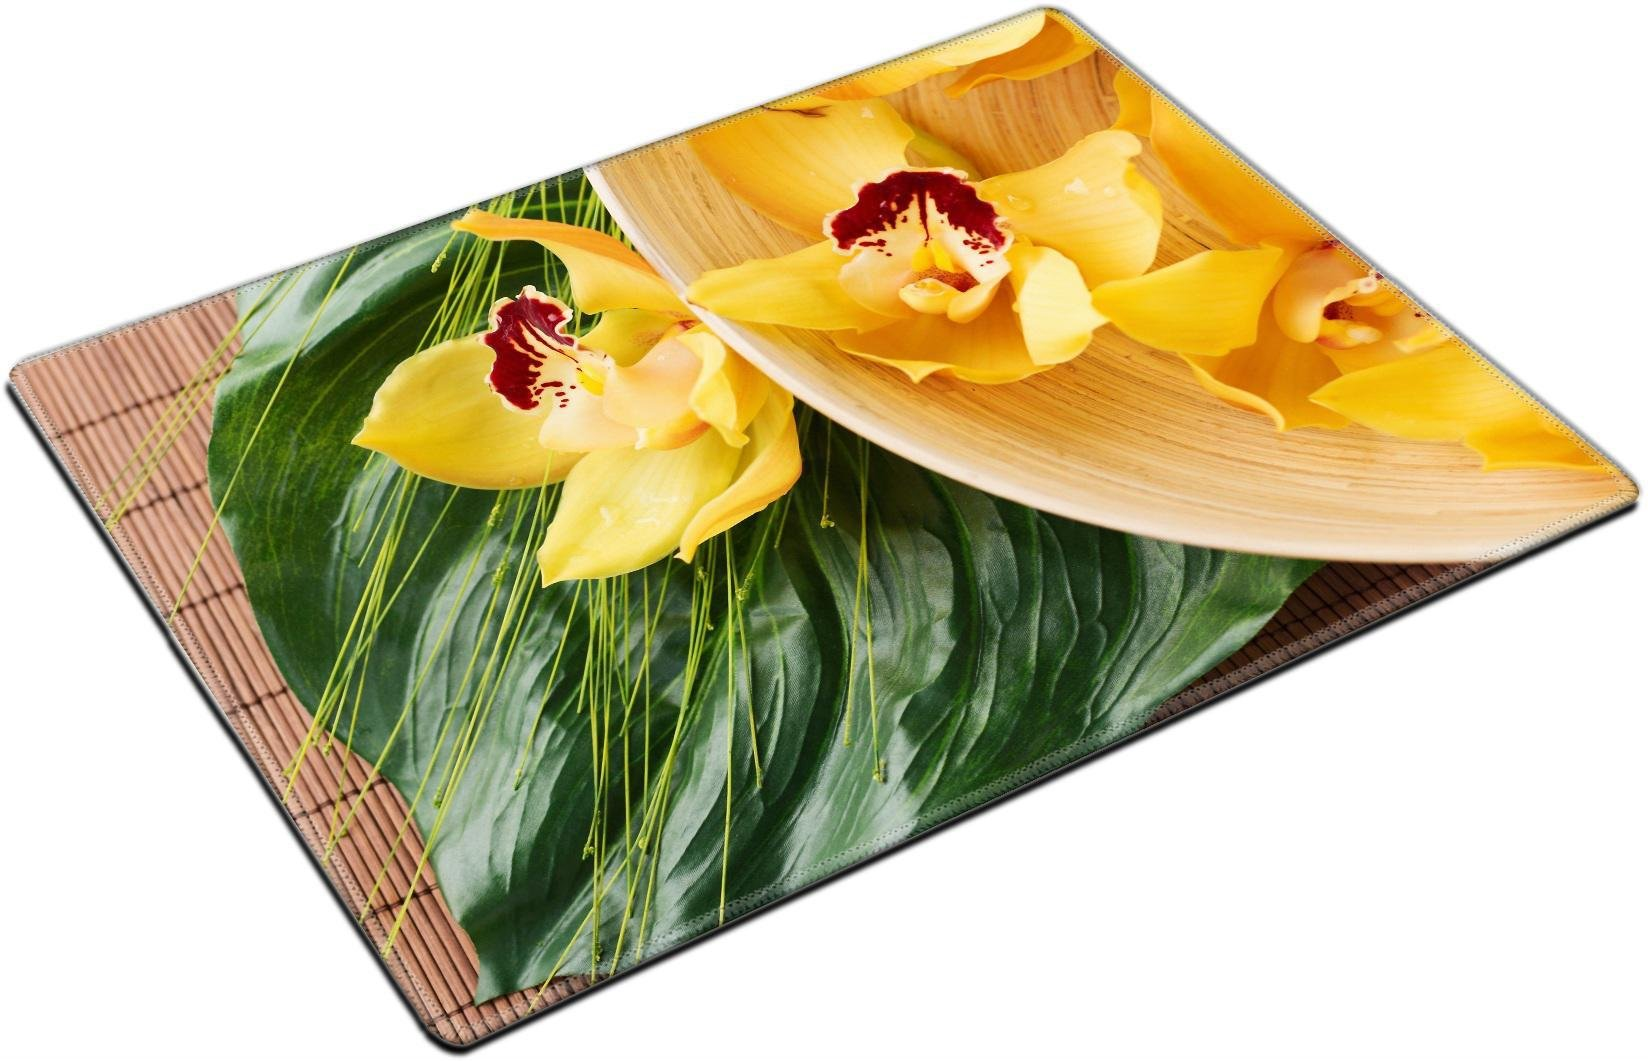 MSD Place Mat Non-Slip Natural Rubber Desk Pads design 25698161 spa heath and beauty concept orchid flowers in bowl with green leaf on mat